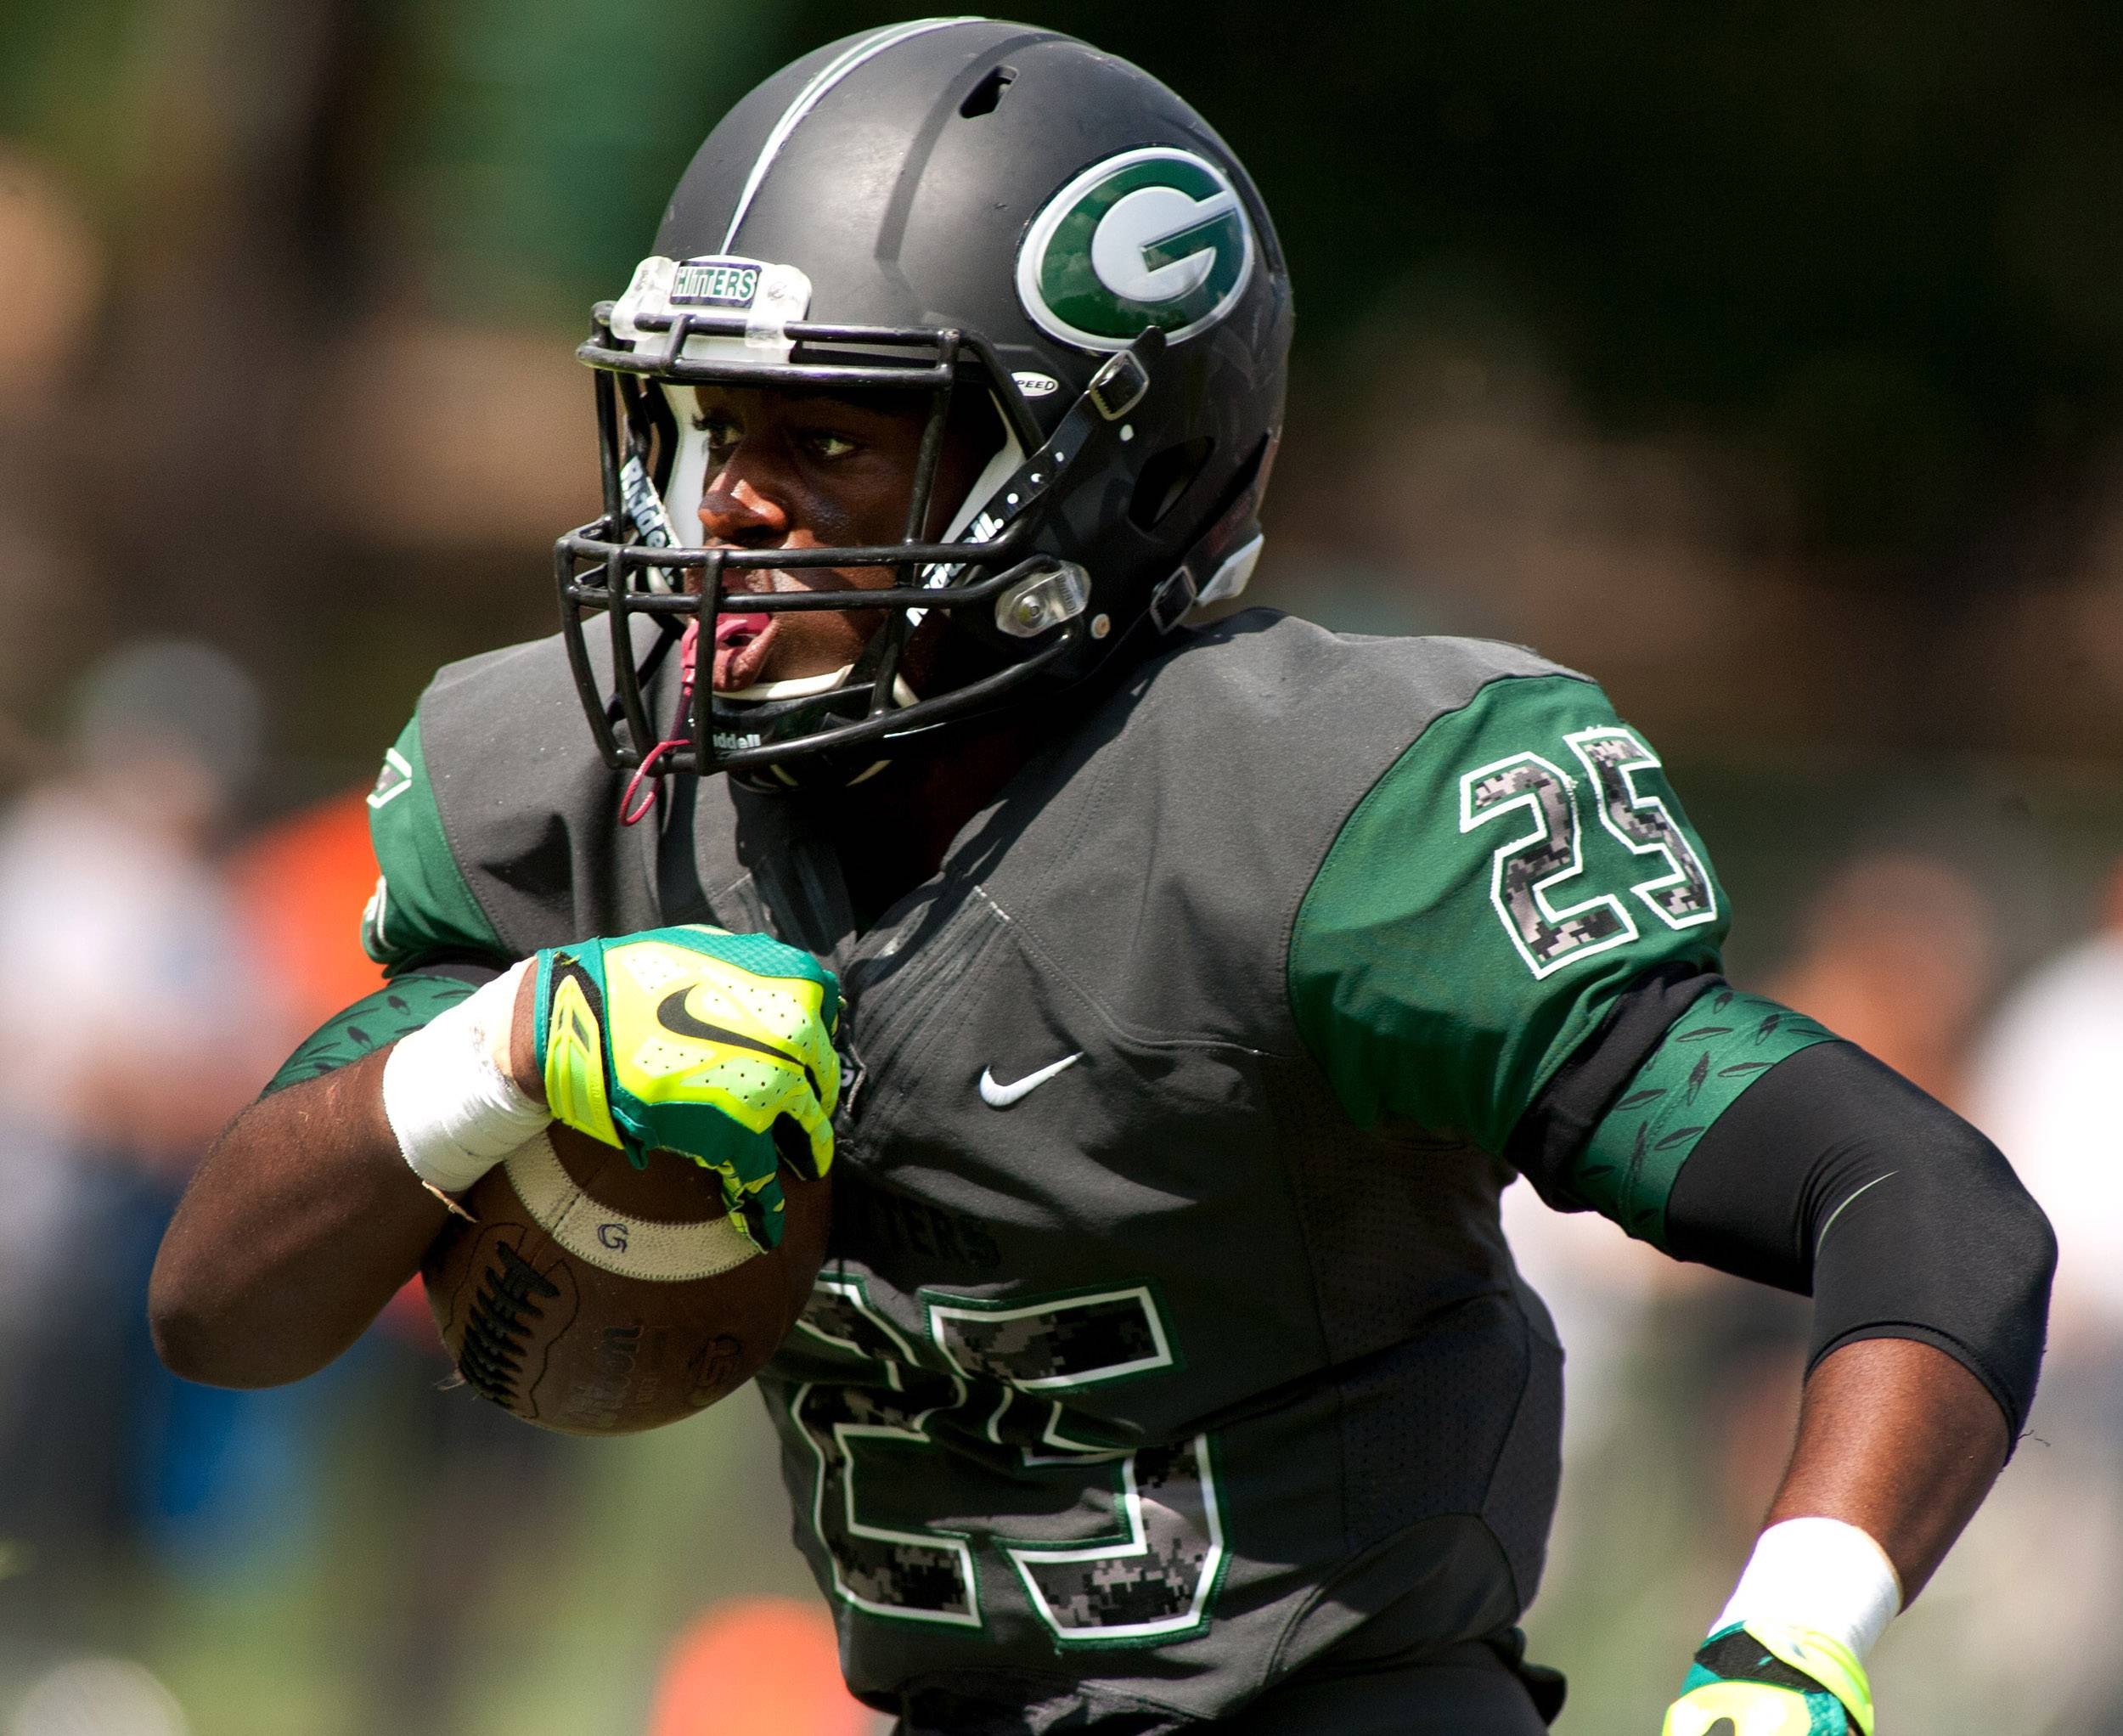 Glenbard West's Donahvon Vaughn eyes the end zone during first half action against Wheaton Warrenville South.